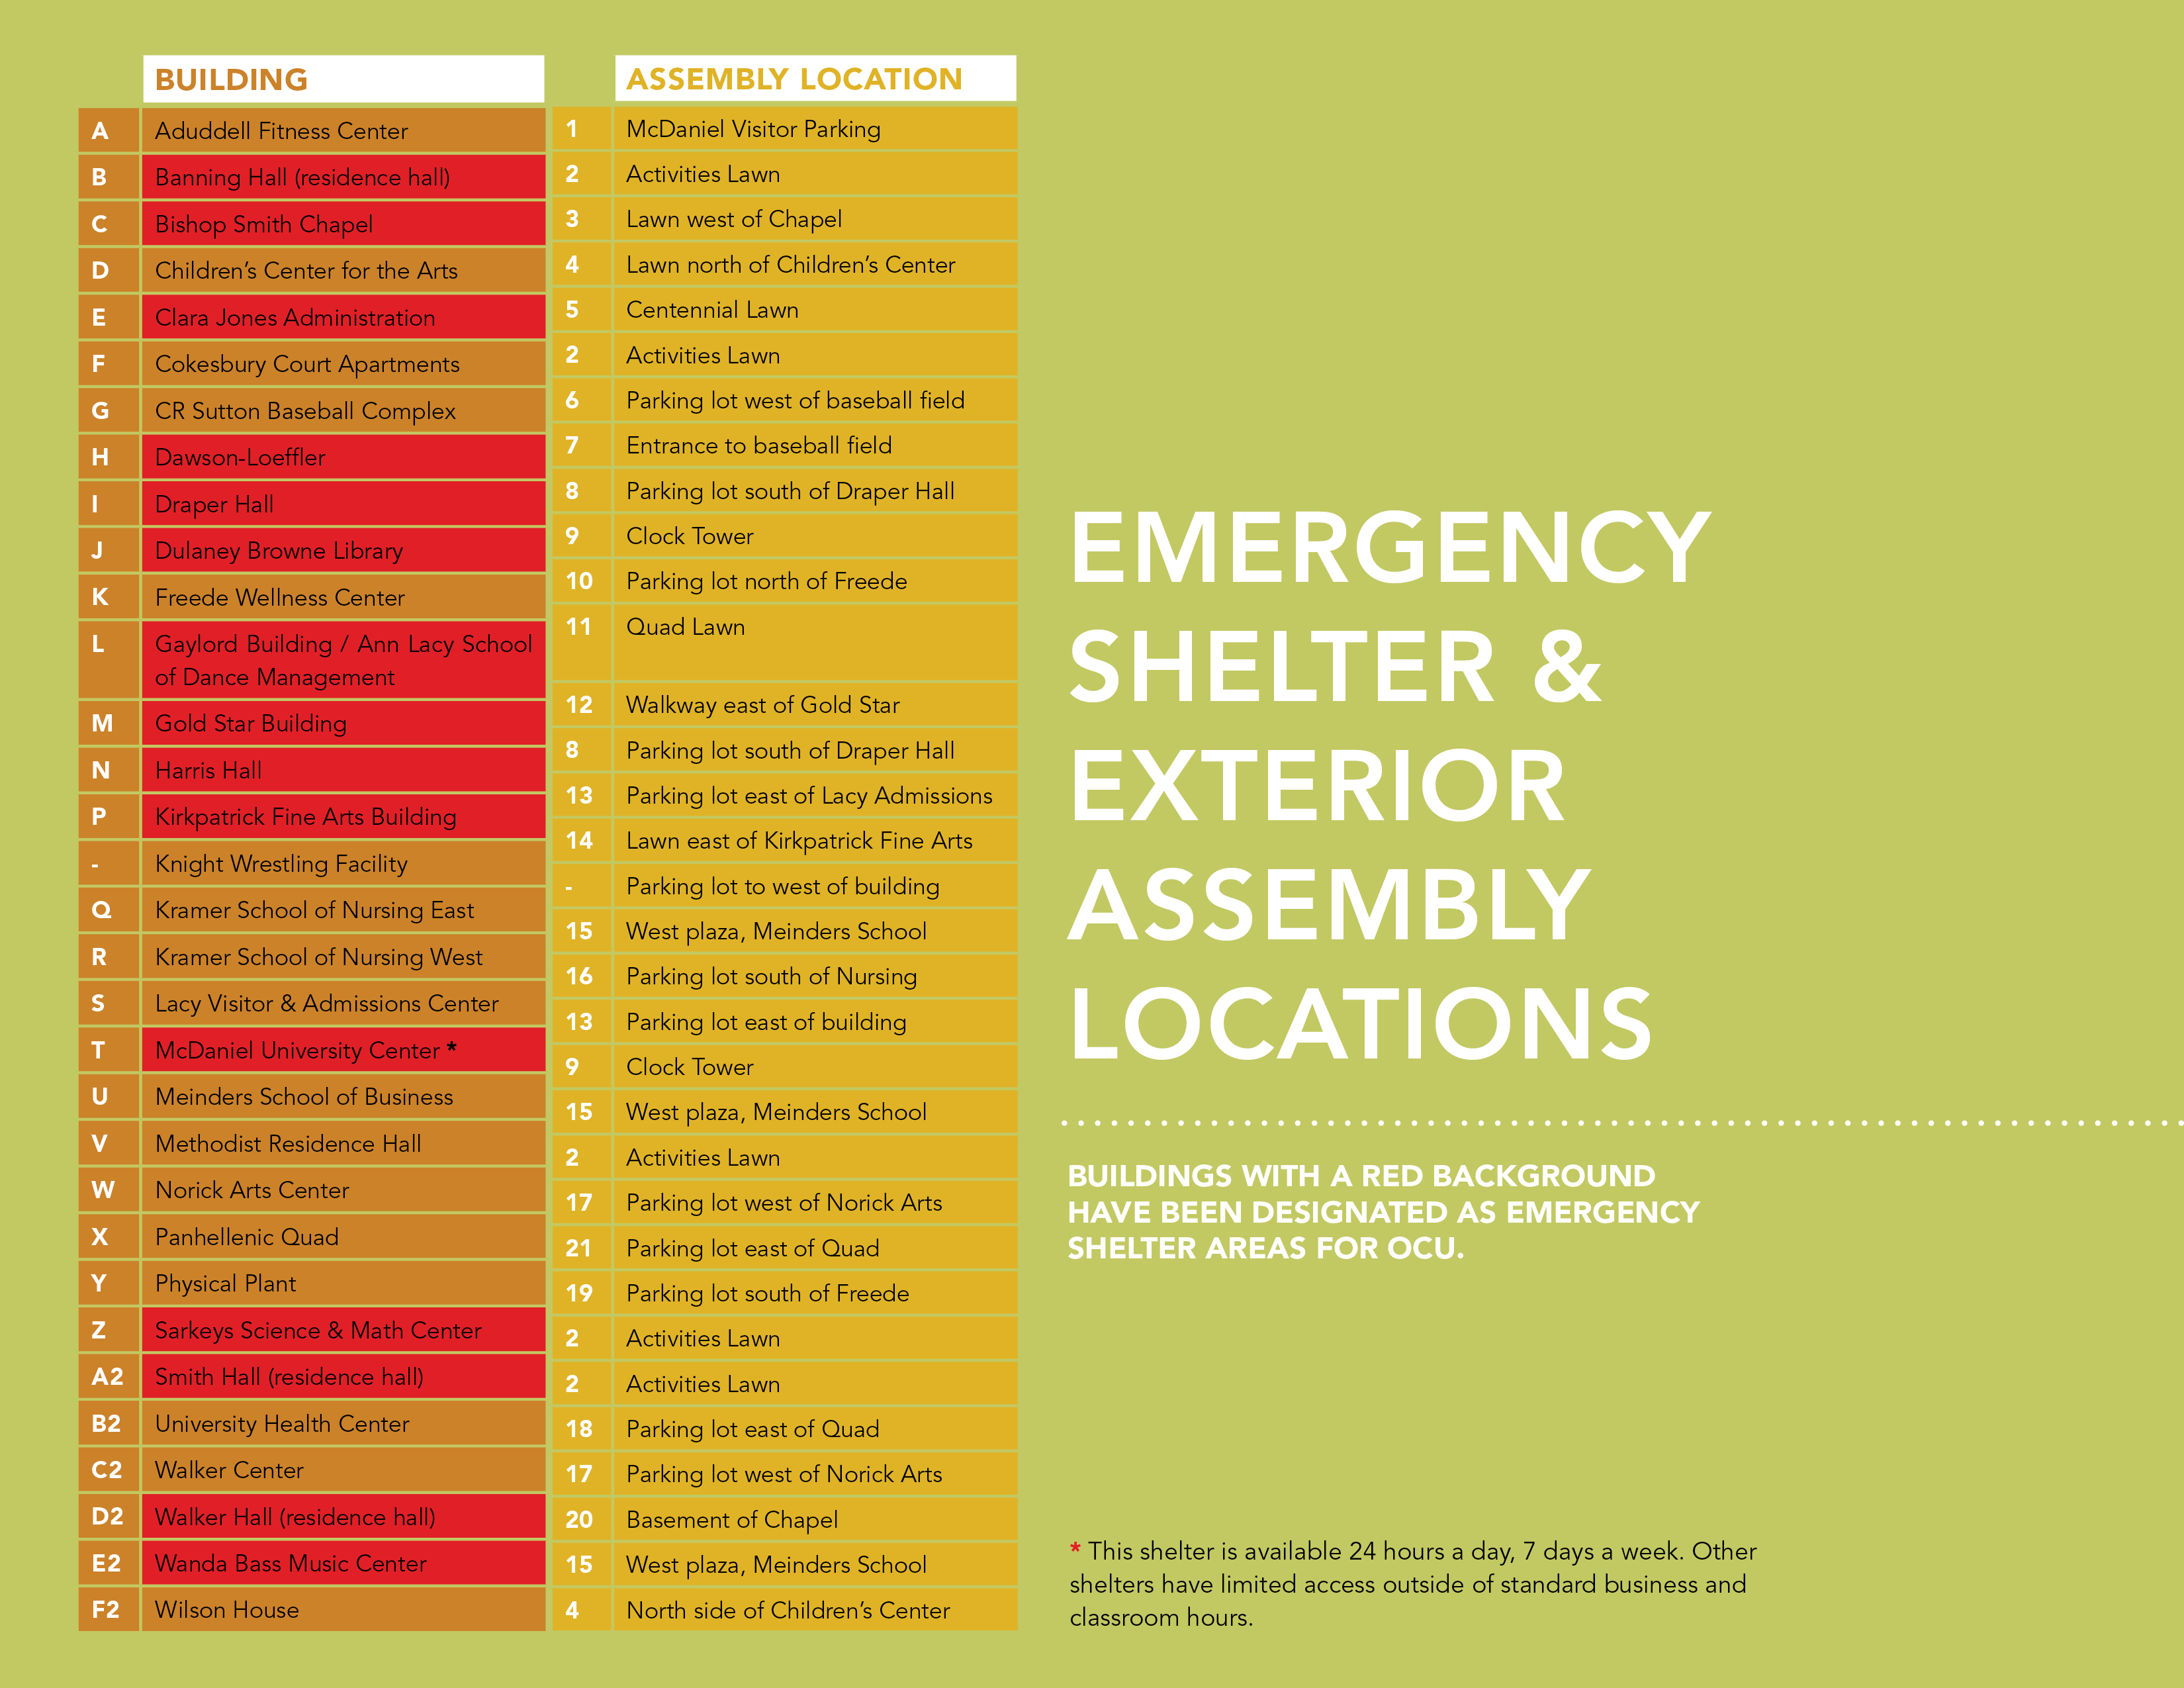 Emergency Shelter & Exterior Assembly Locations